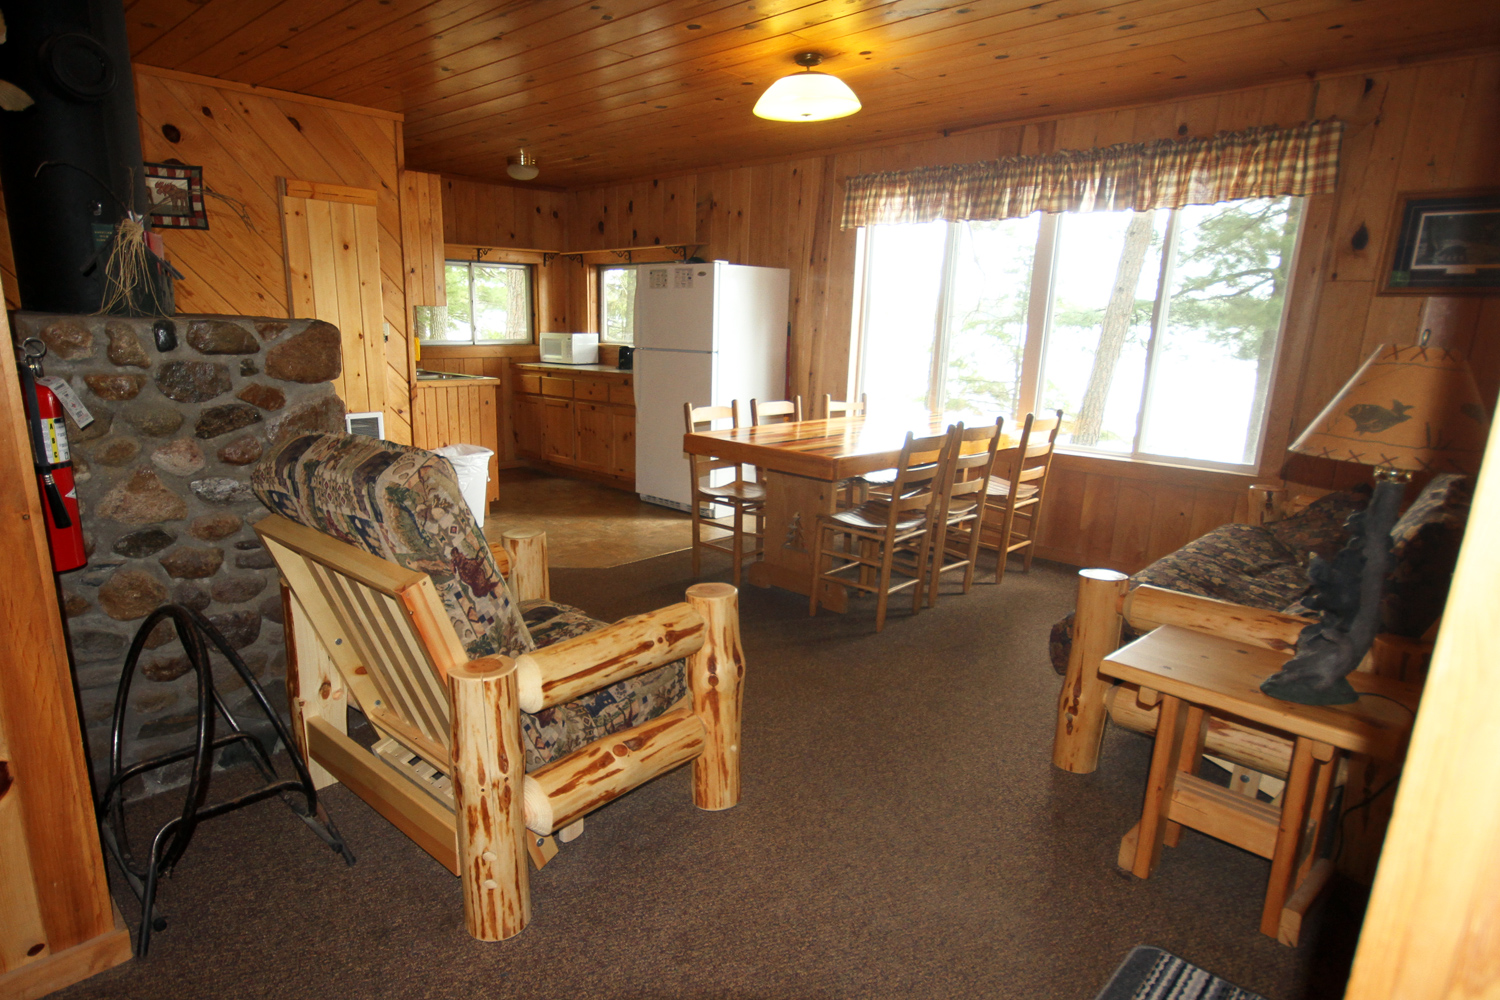 Walk into the Living & Dining Area with a Pull Out Couch & Fireplace